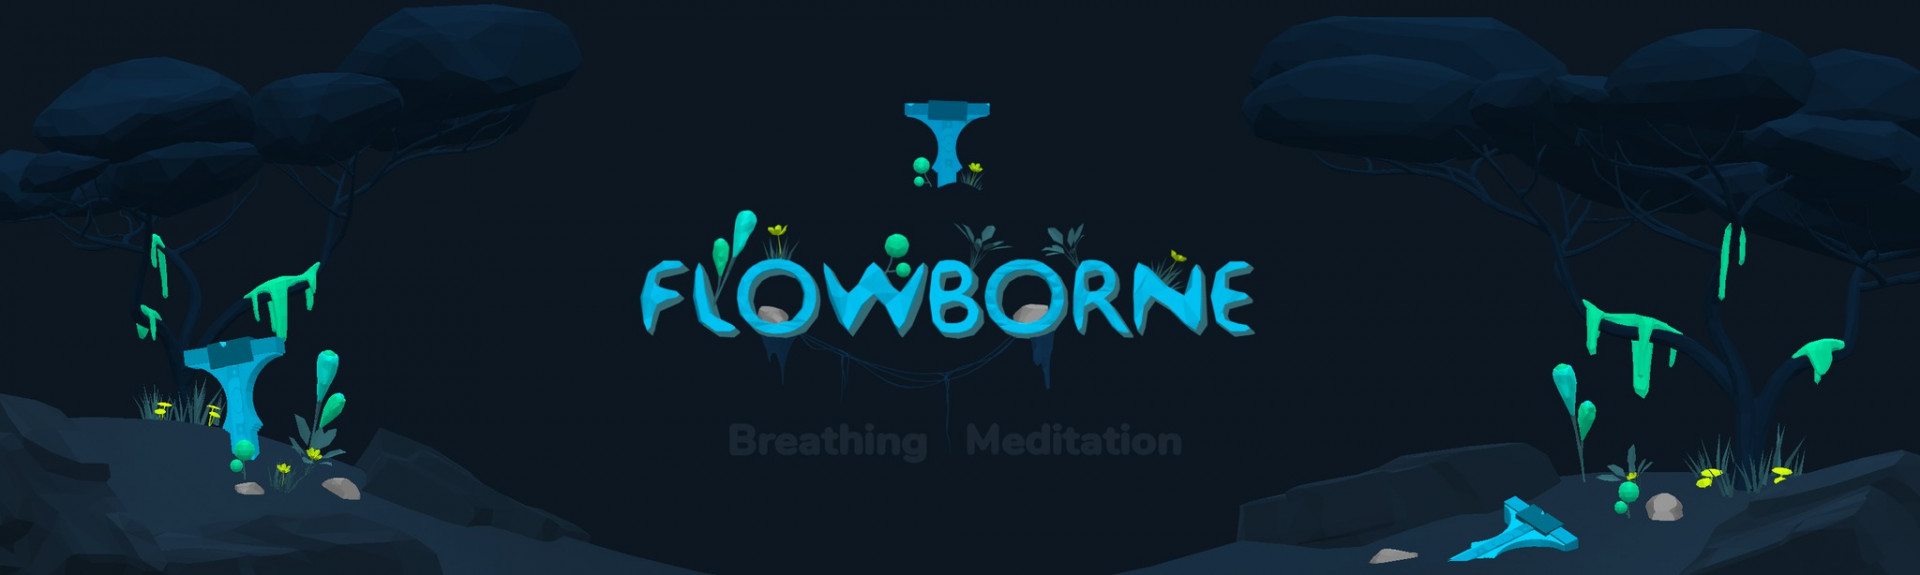 Flowborne - Breathing Meditation